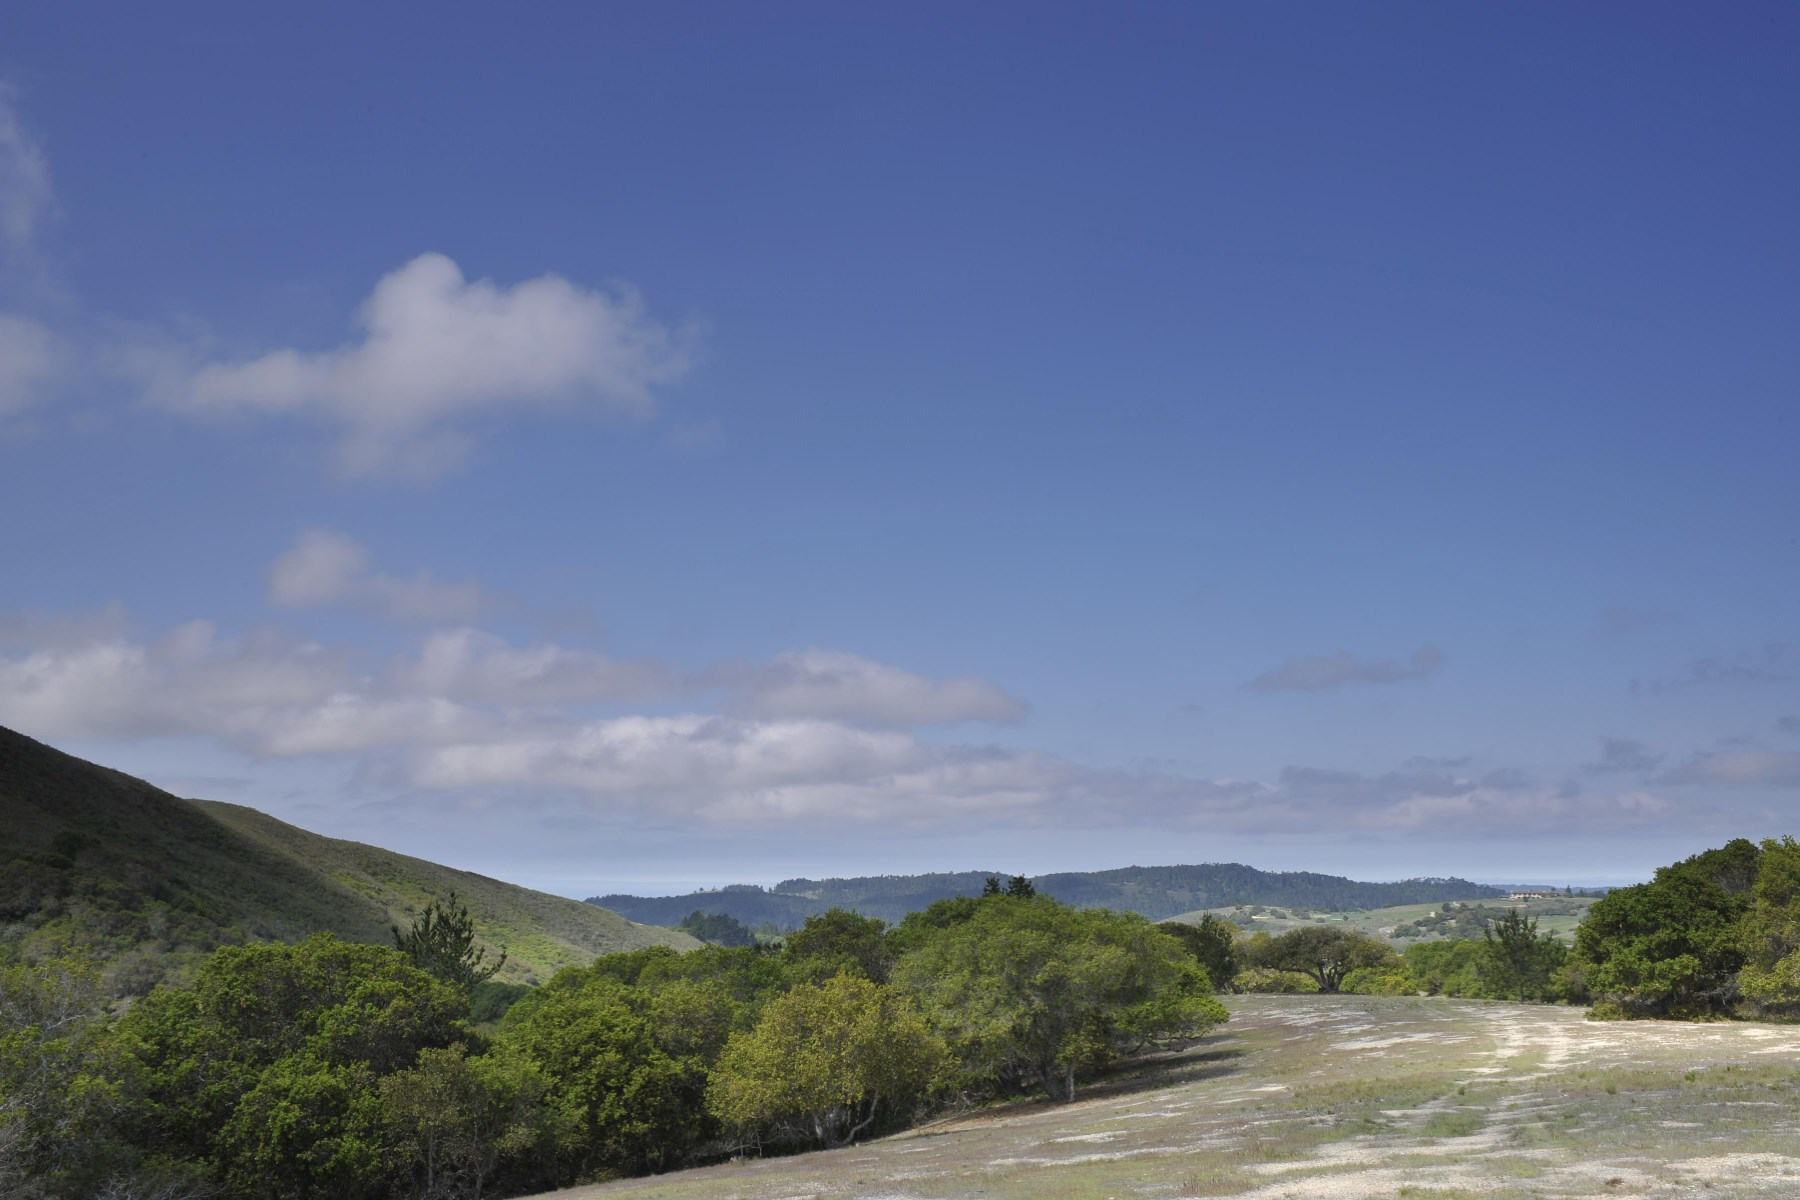 Land for Sale at Homesite 66 in Tehama 8425 Alta Tierra (Lot 66 Tehama) Carmel, California, 93923 United States